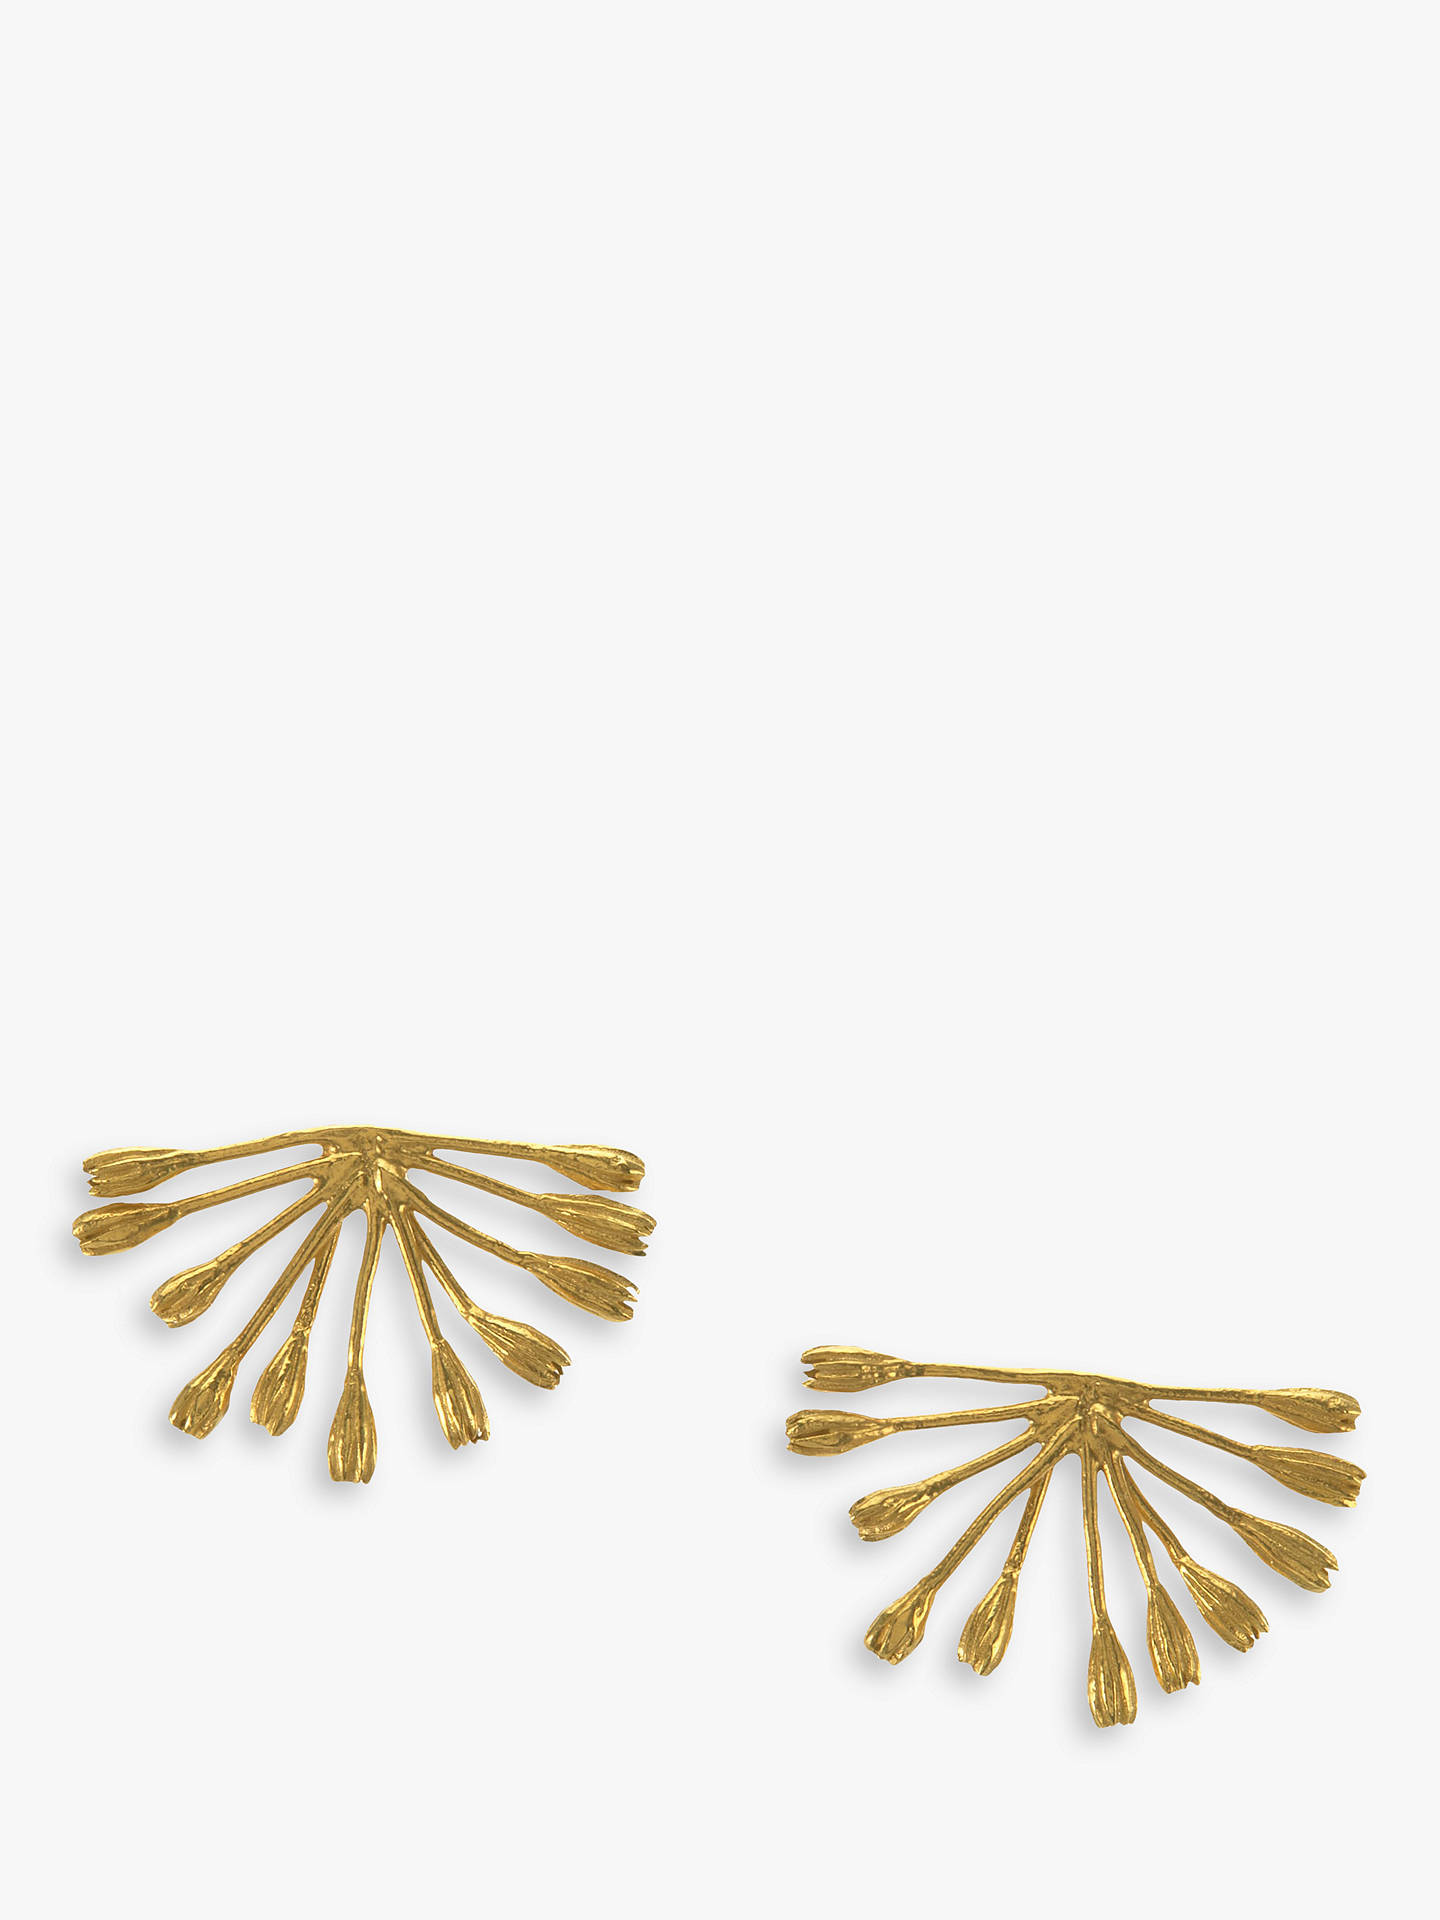 BuyAlex Monroe 22ct Gold Plated Fanned Seed Earrings Online at johnlewis.com